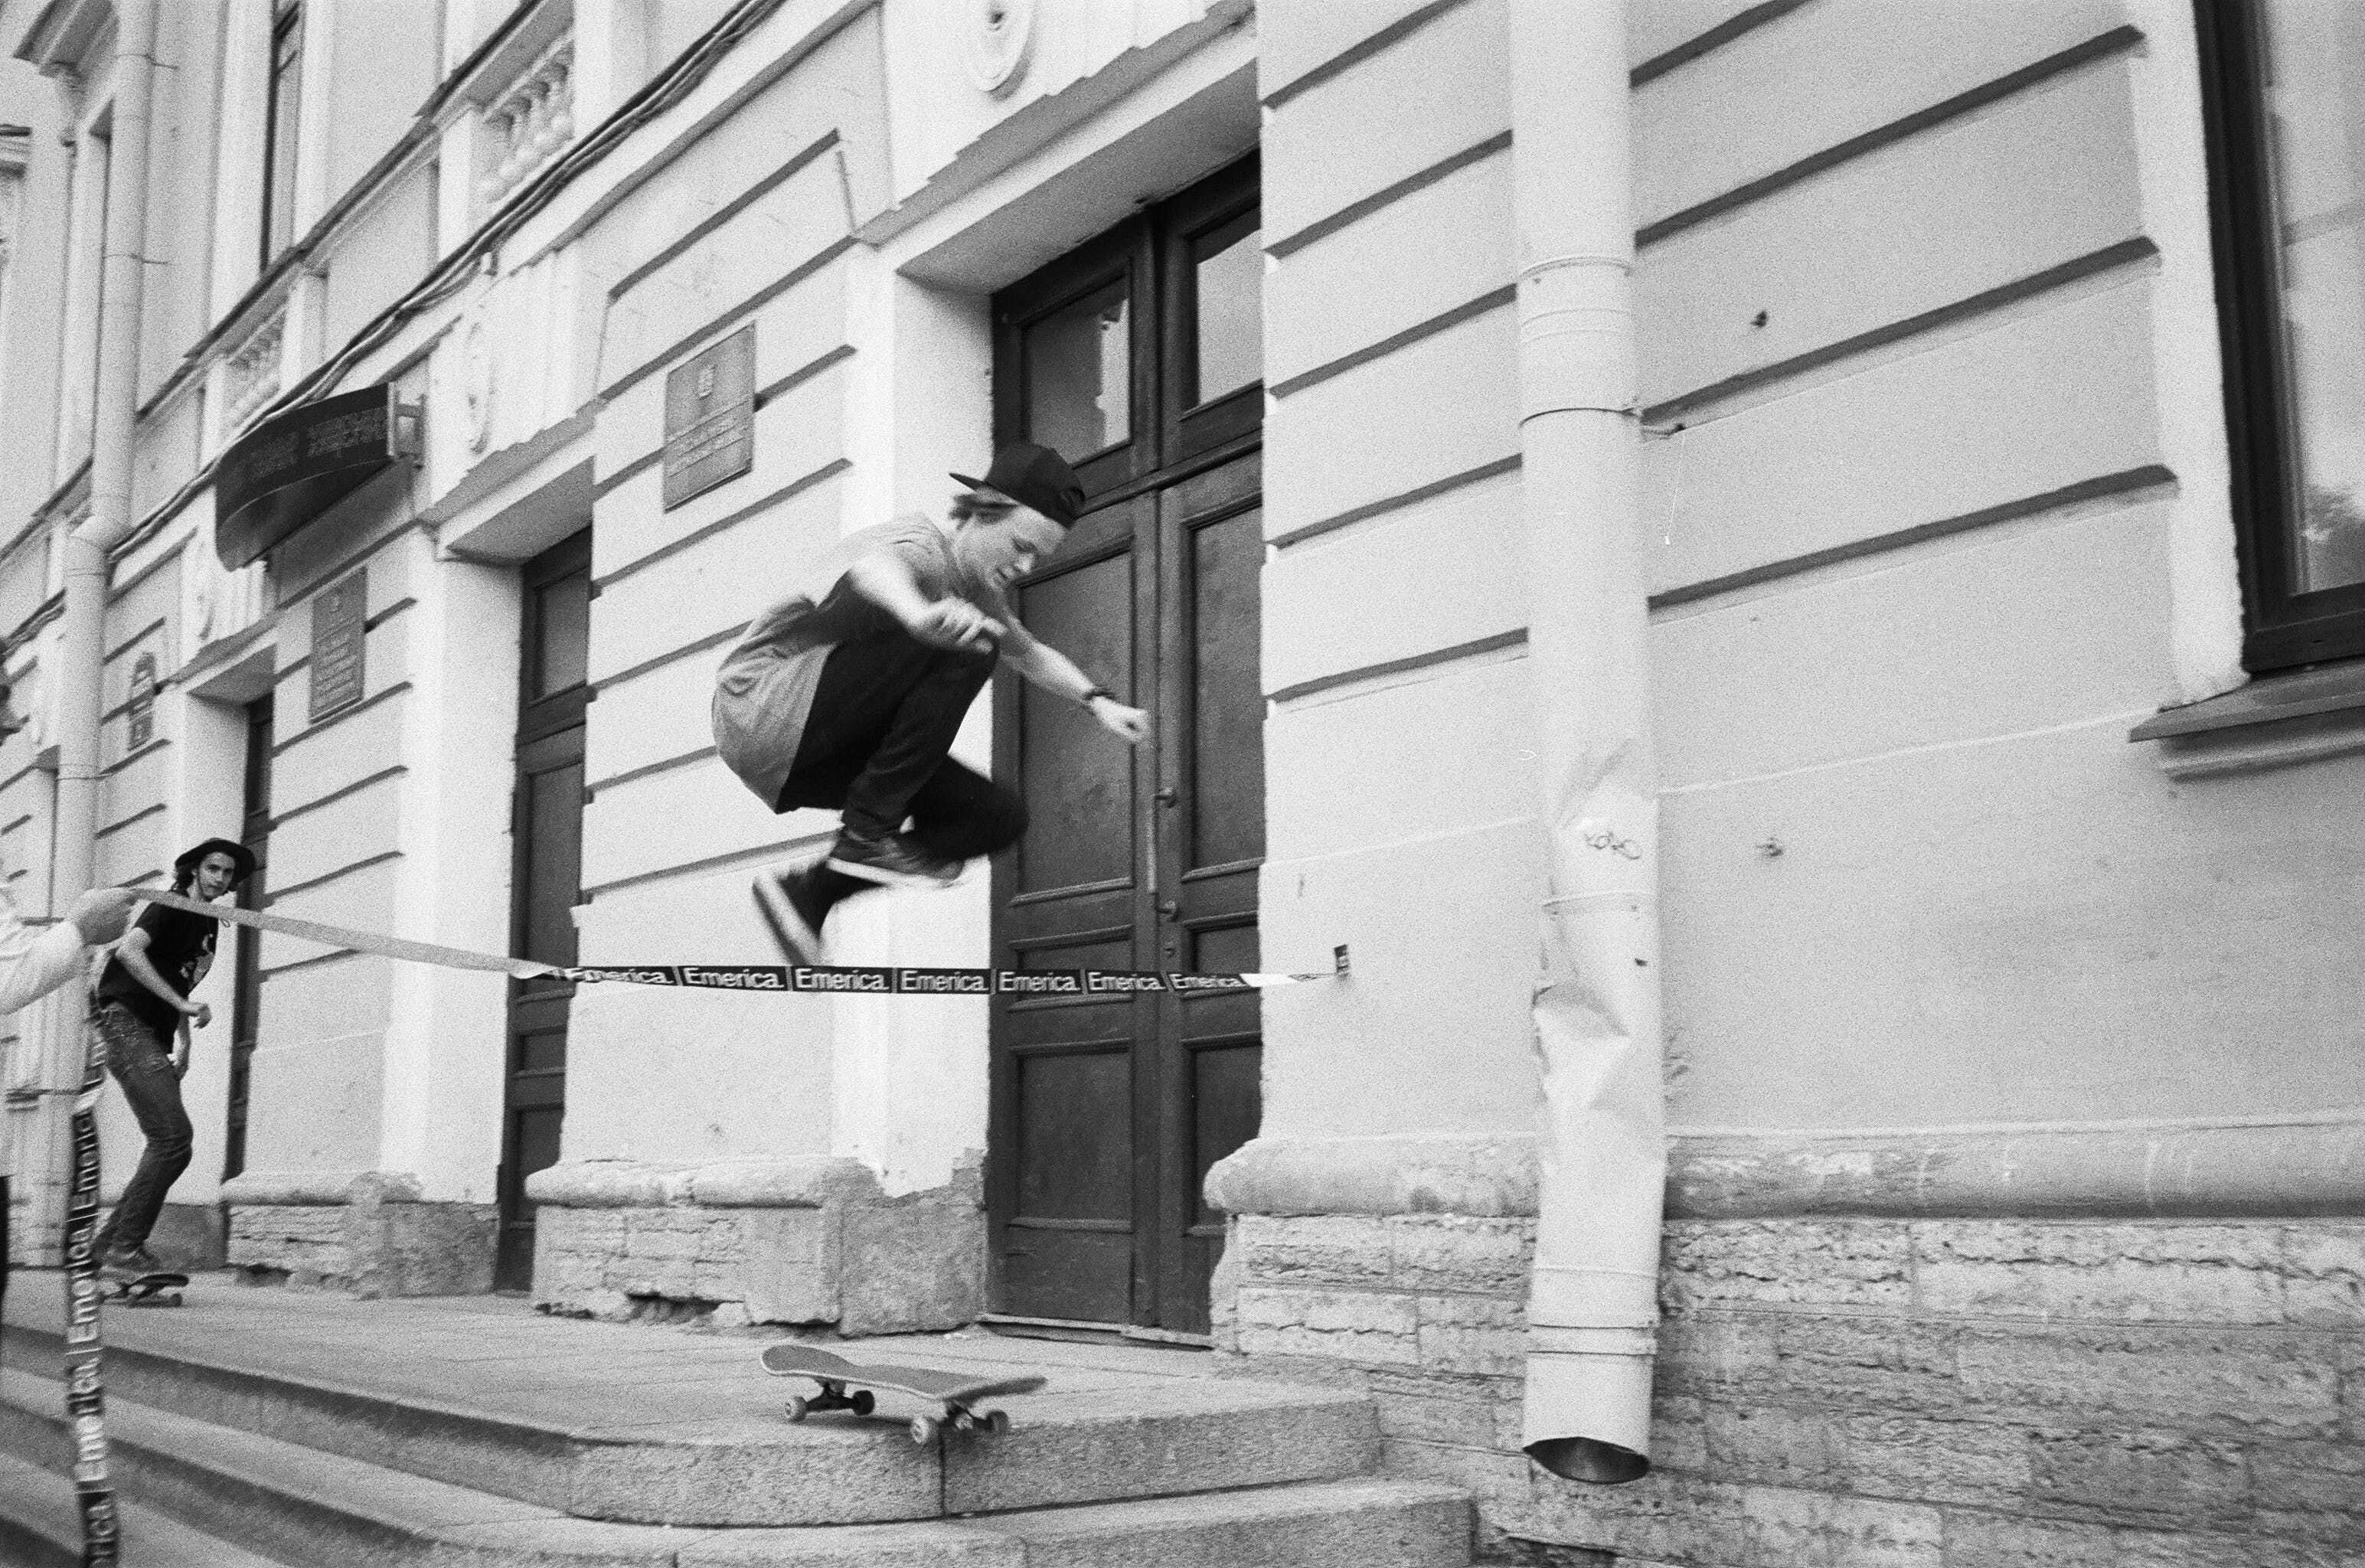 Grayscale Photography of Man Riding Skateboard Making Tricks Near Concrete Building